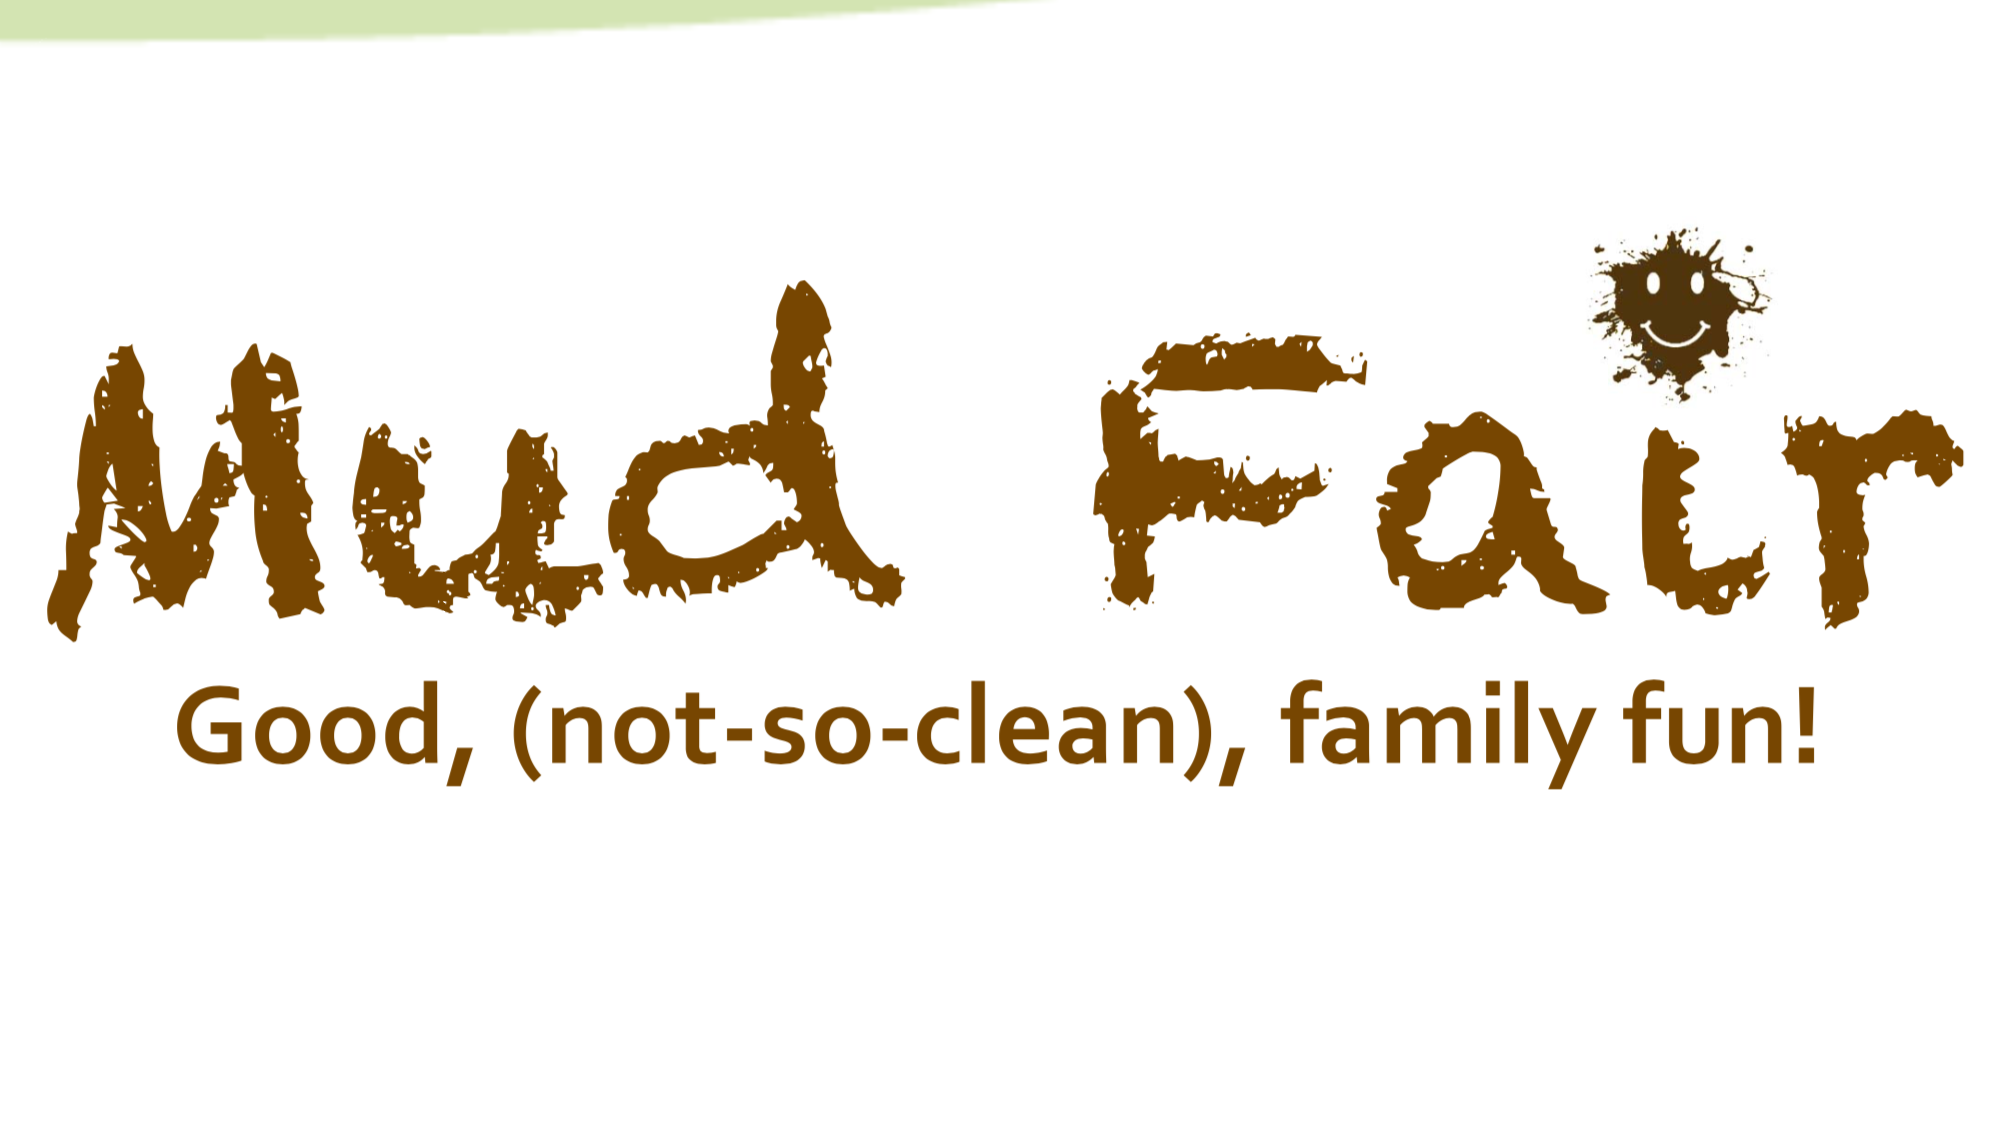 - Mud Fair is a day designed to give families a chance for some good, not so clean, family fun! Learn more about it here.